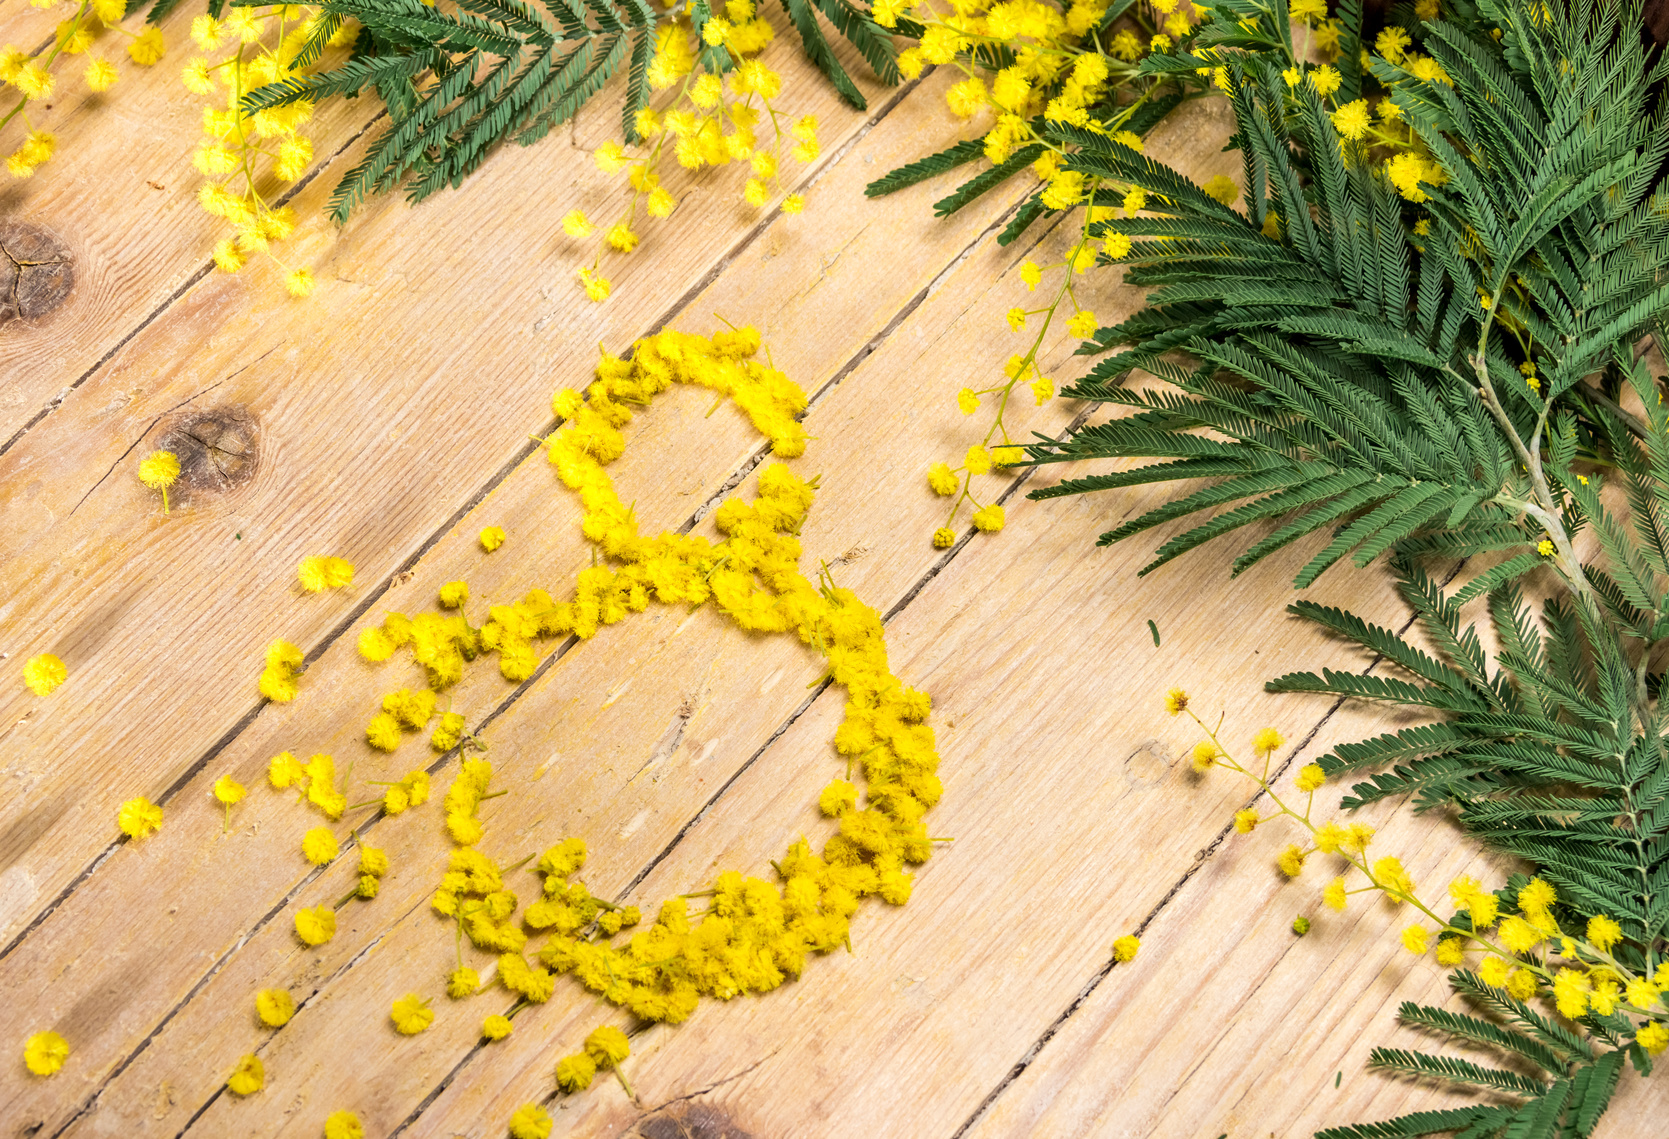 Mimosa in the International Women's Day on 8 March